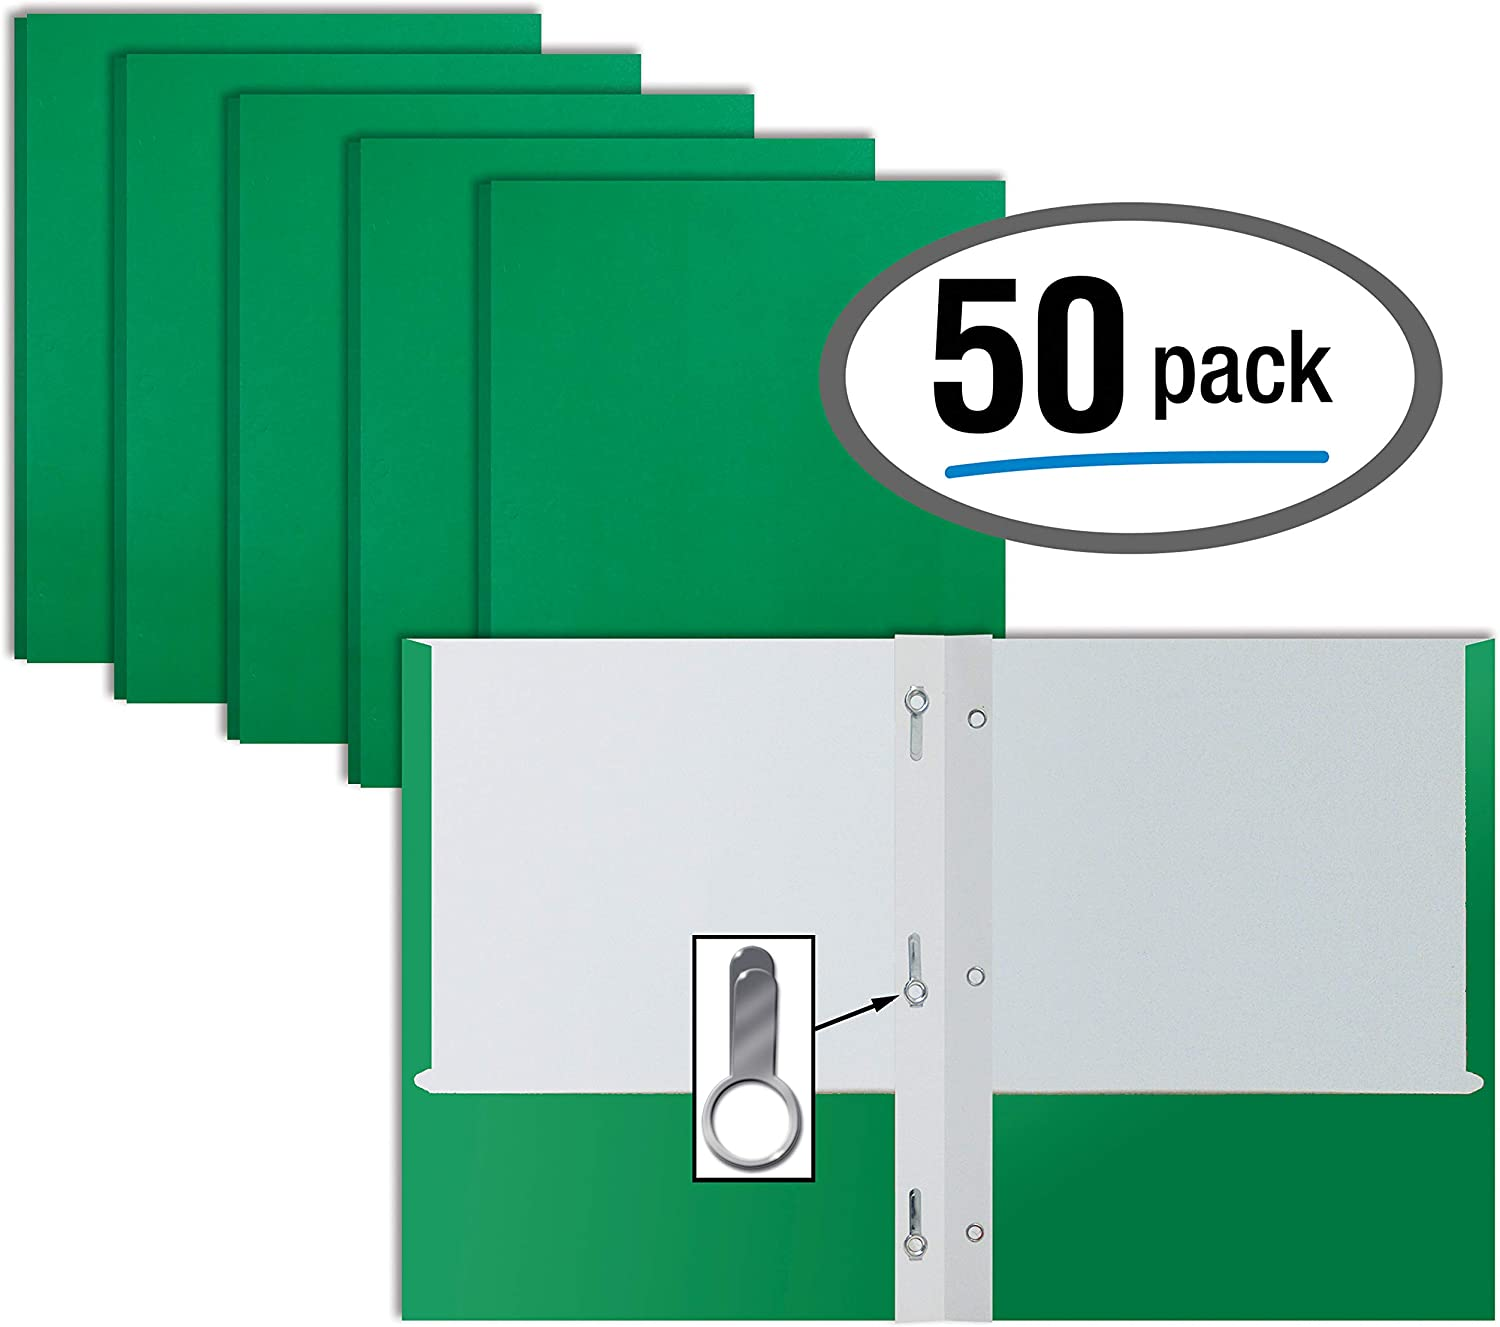 Green Paper 2 Pocket Folders with Prongs, 50 Pack, by Better Office Products, Matte Texture, Letter Size Paper Folders, 50 Pack, with 3 Metal Prong Fastener Clips, Green